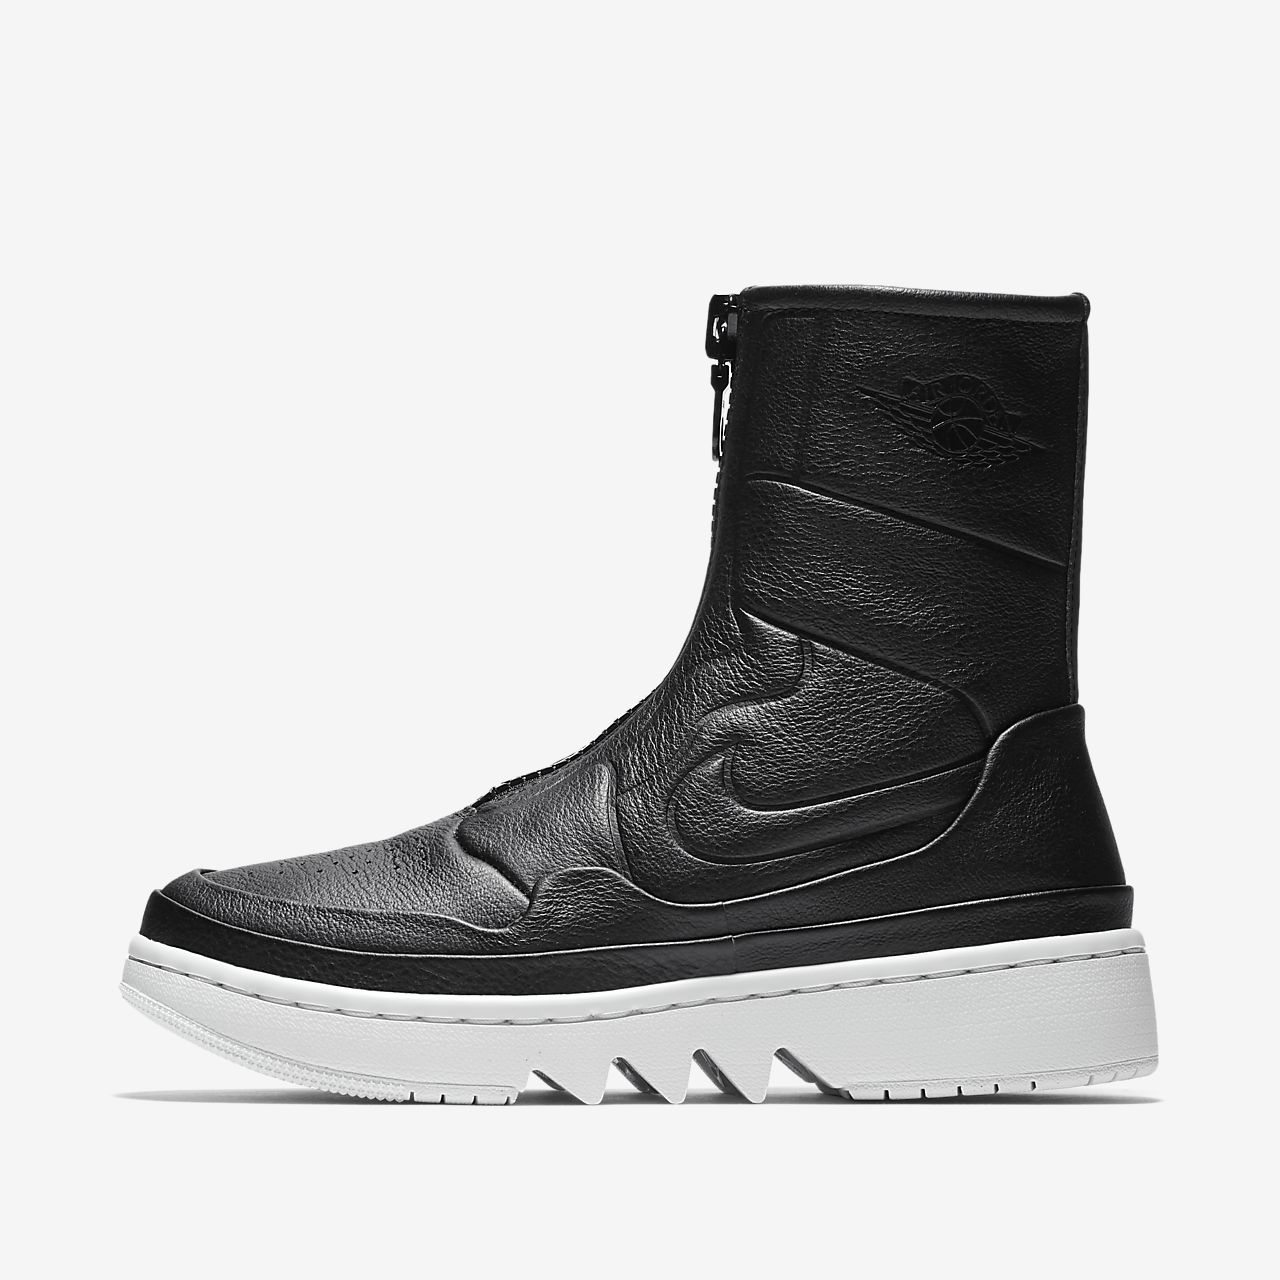 Air Jordan 1 Jester XX Women's Shoe